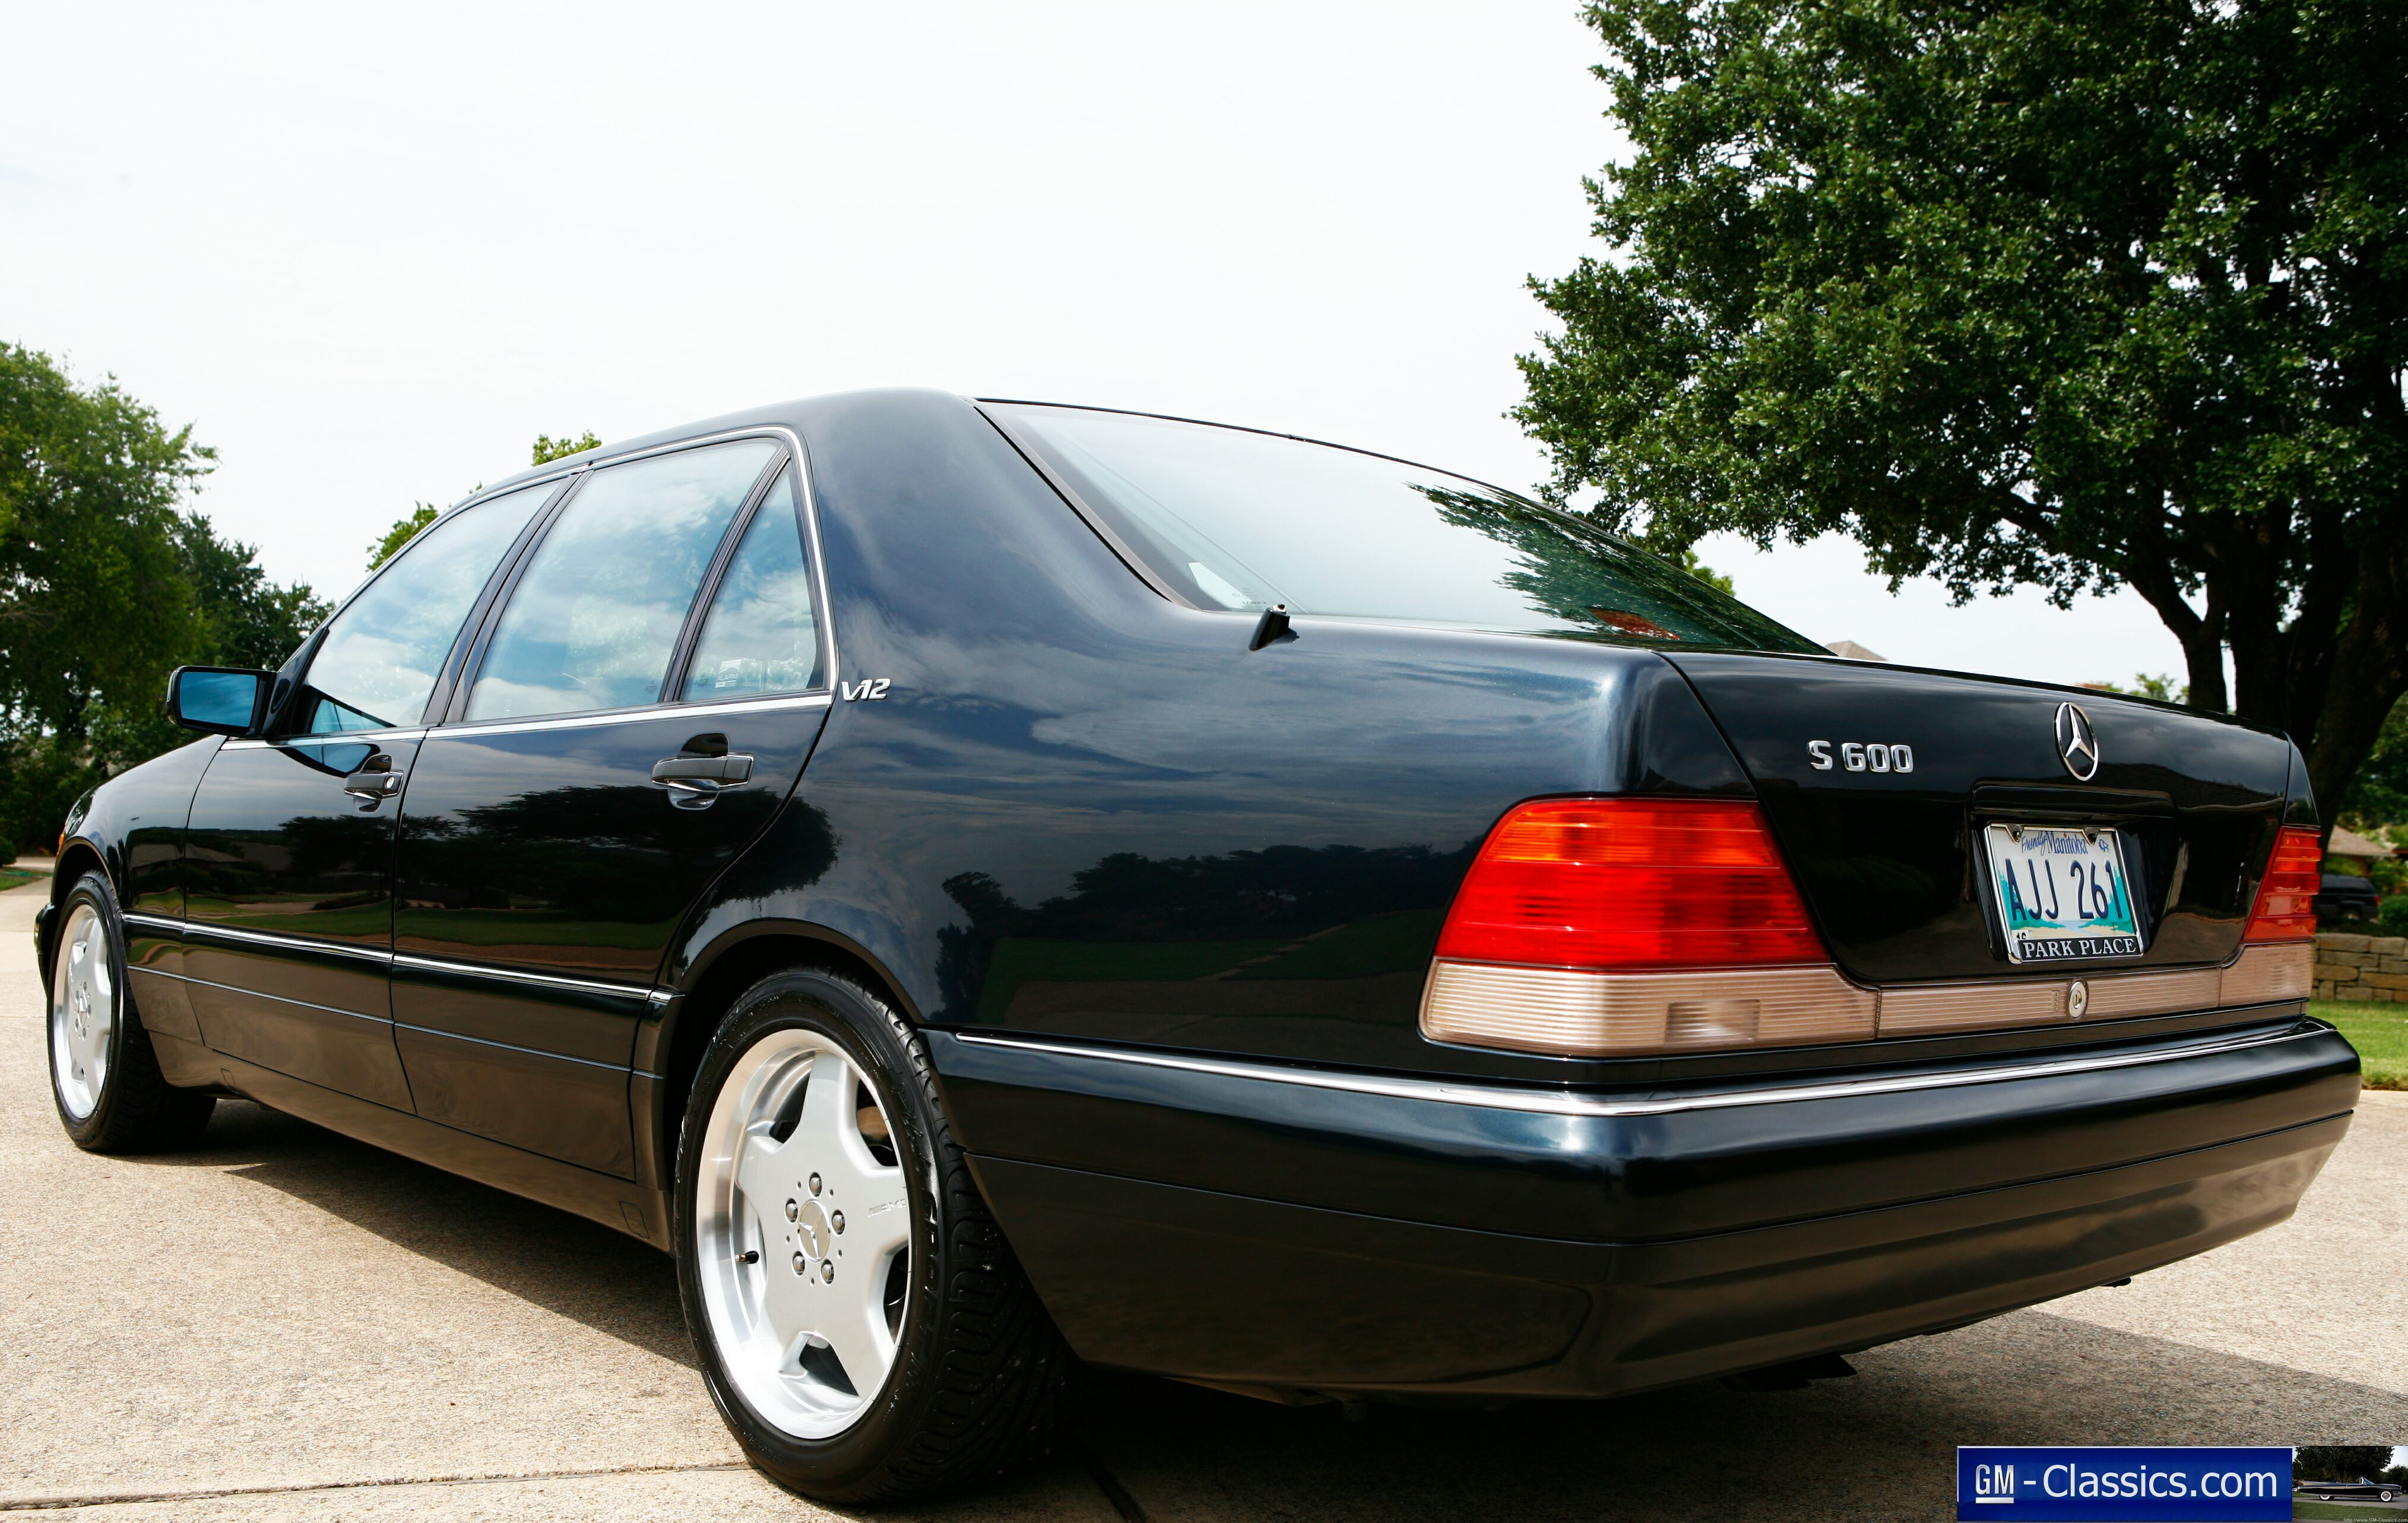 Mercedes benz s600 matt garrett for 1996 mercedes benz s600